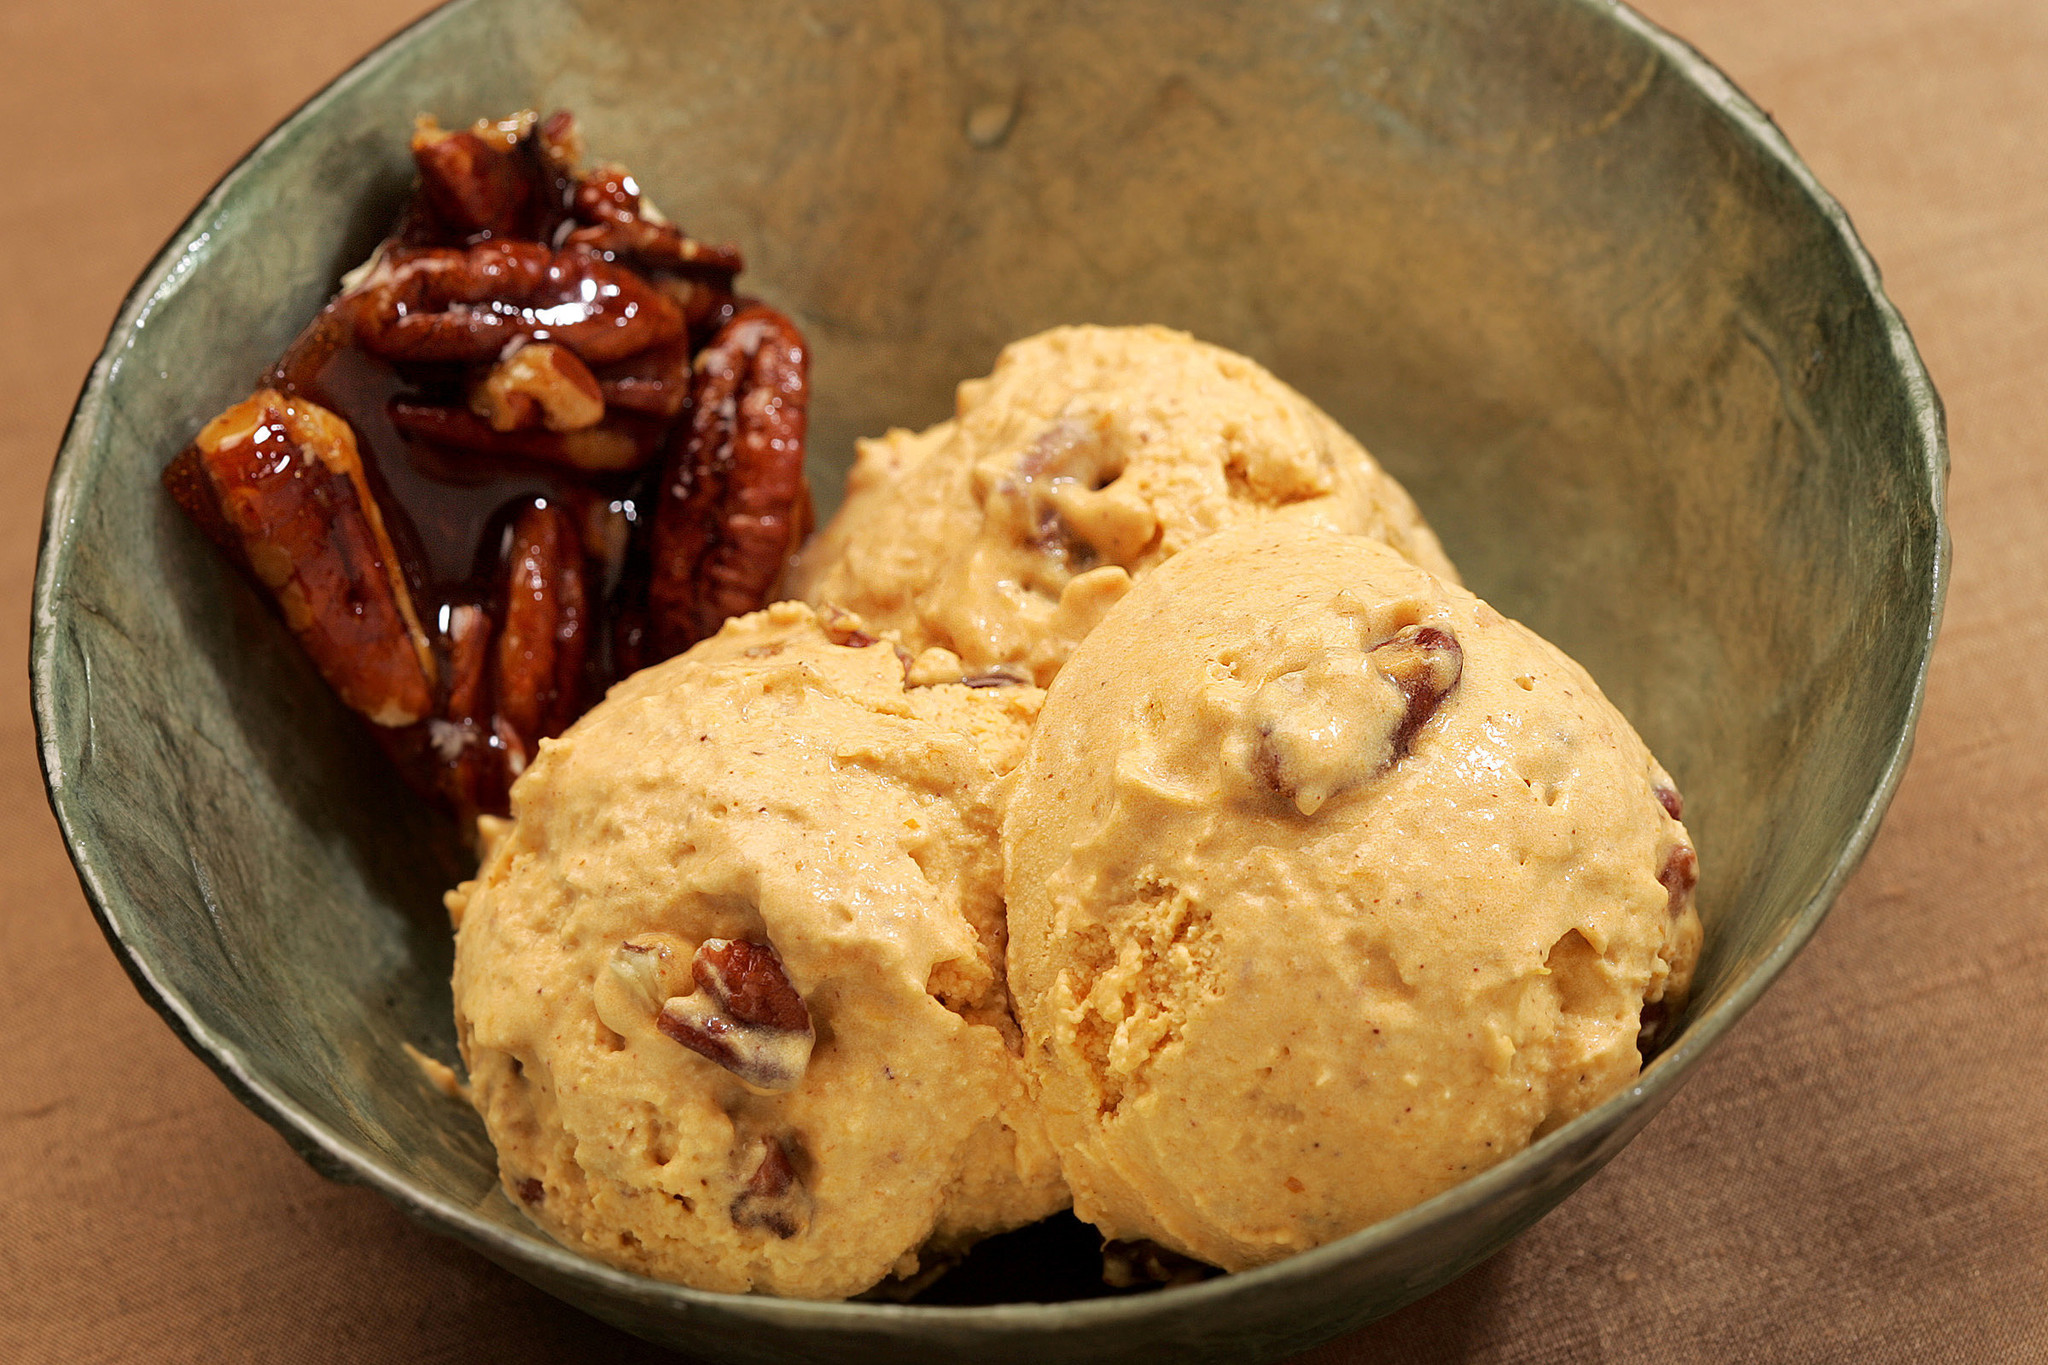 Photos: 97 great Thanksgiving recipes - Pumpkin pie ice cream with pecan praline